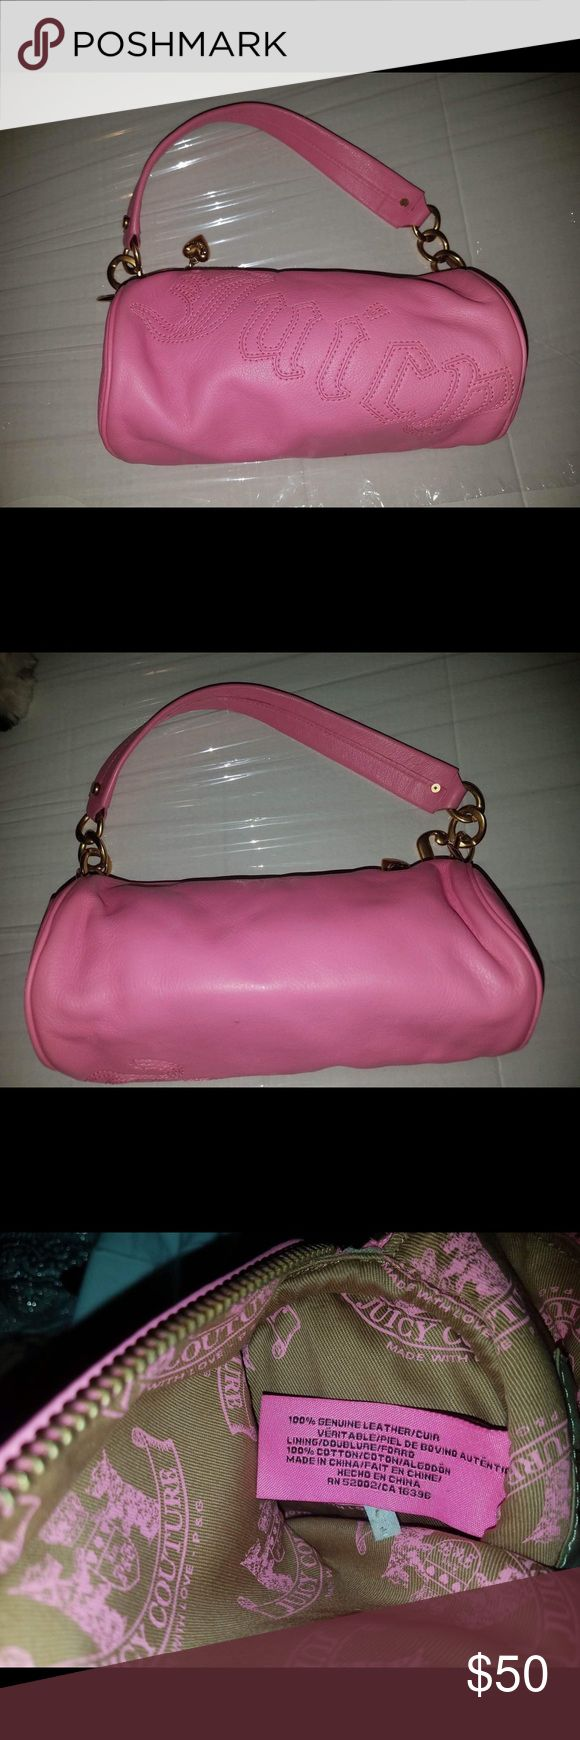 Juicy Couture small pink leather barrel handbag 💯 leather barrel handbag only used once. Spotless interior with shiny hardware! Beautiful small bag. Juicy Couture Bags